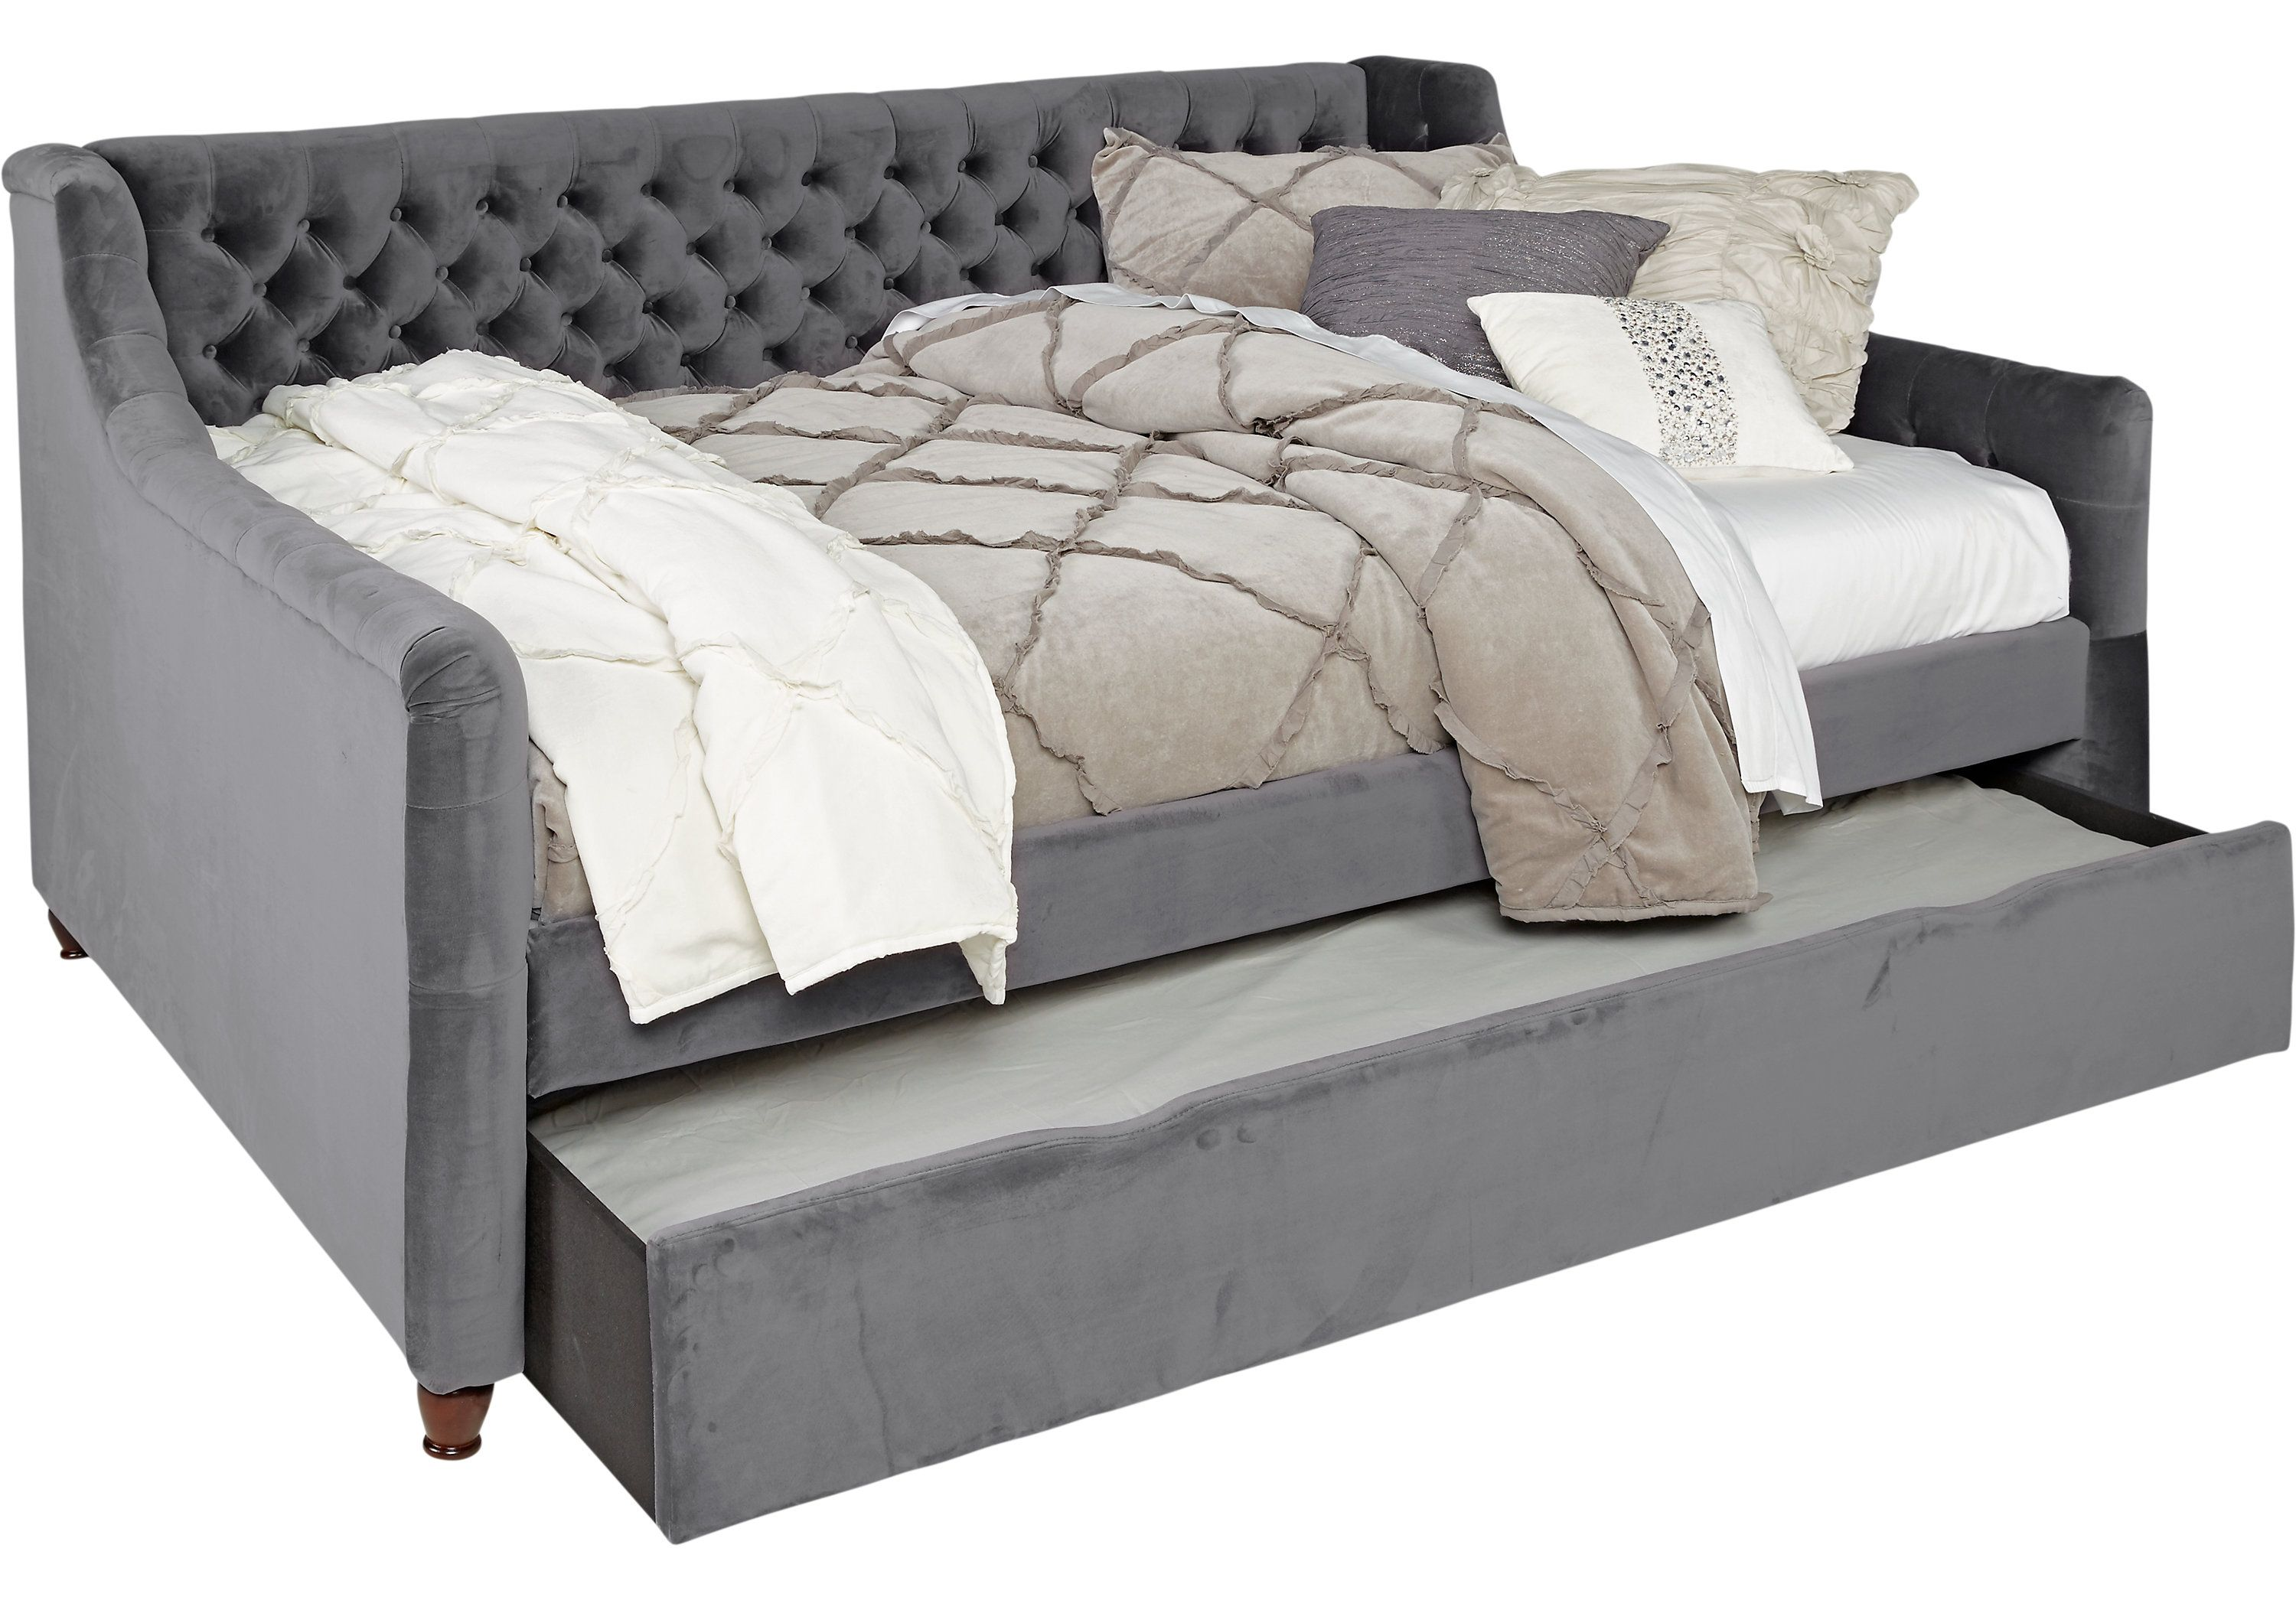 Loft Charcoal Sofa Bed Macy S Chloe Sale Rooms To Go Daybed With Trundle New House Designs